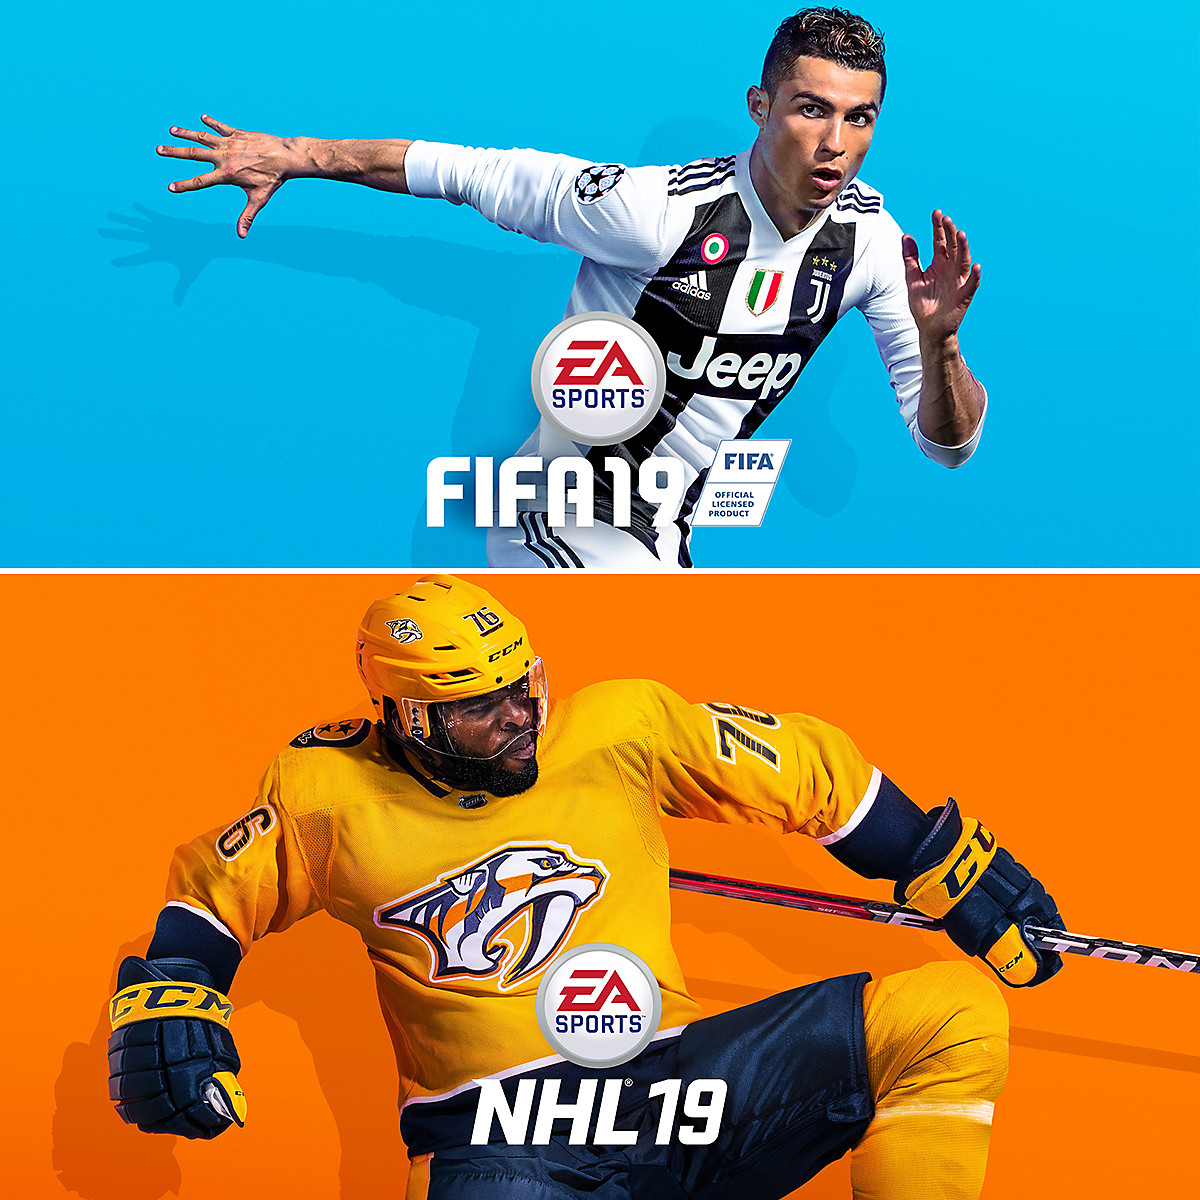 FIFA 19 - NHL® 19 Bundle